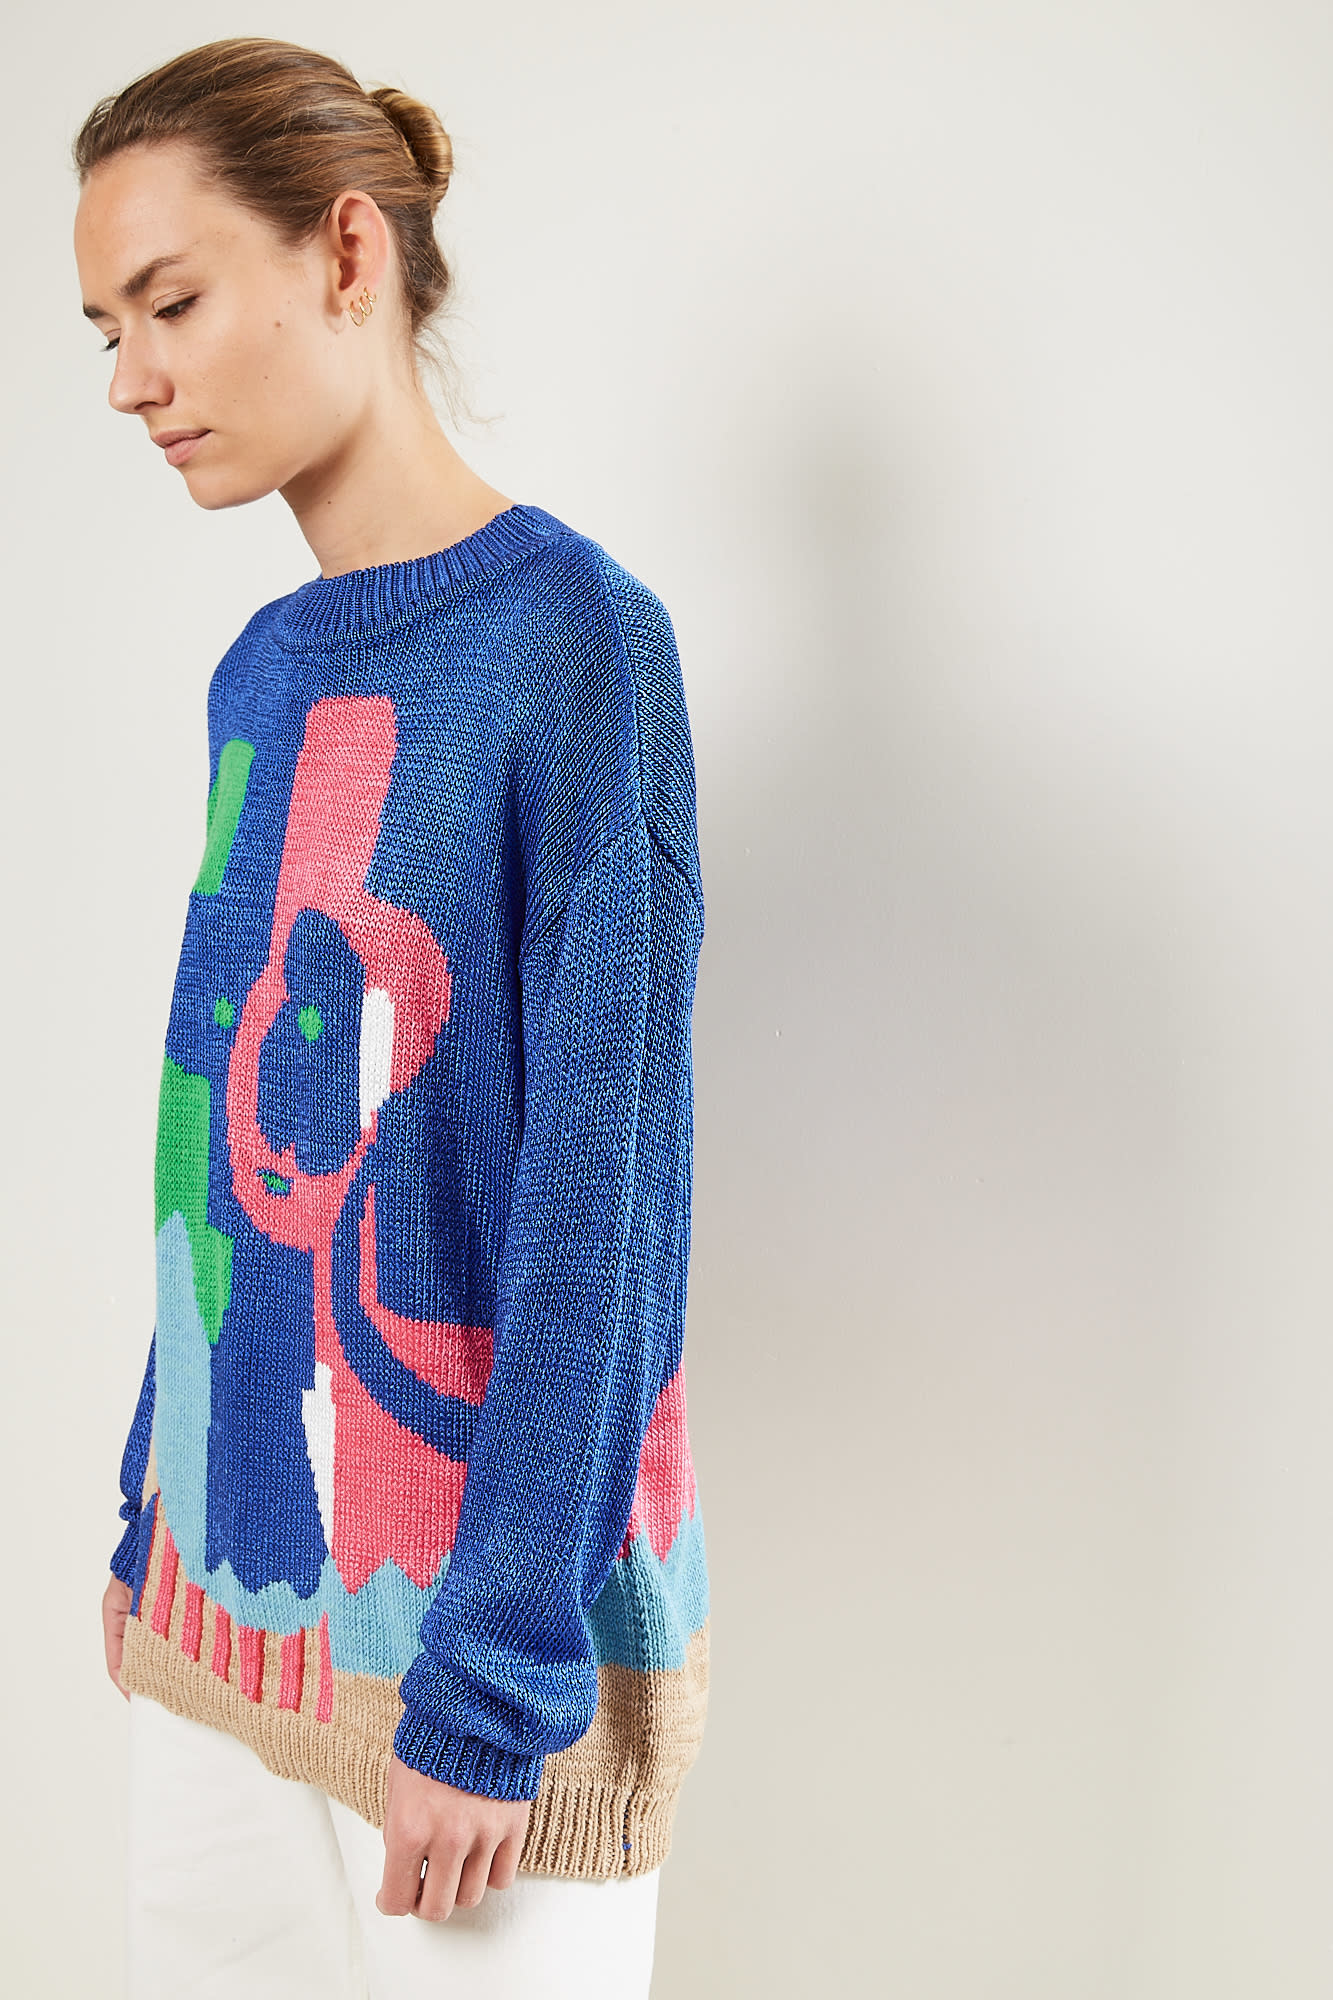 Survival of the fashionest - Pablo big Picassso's Pierot sweater